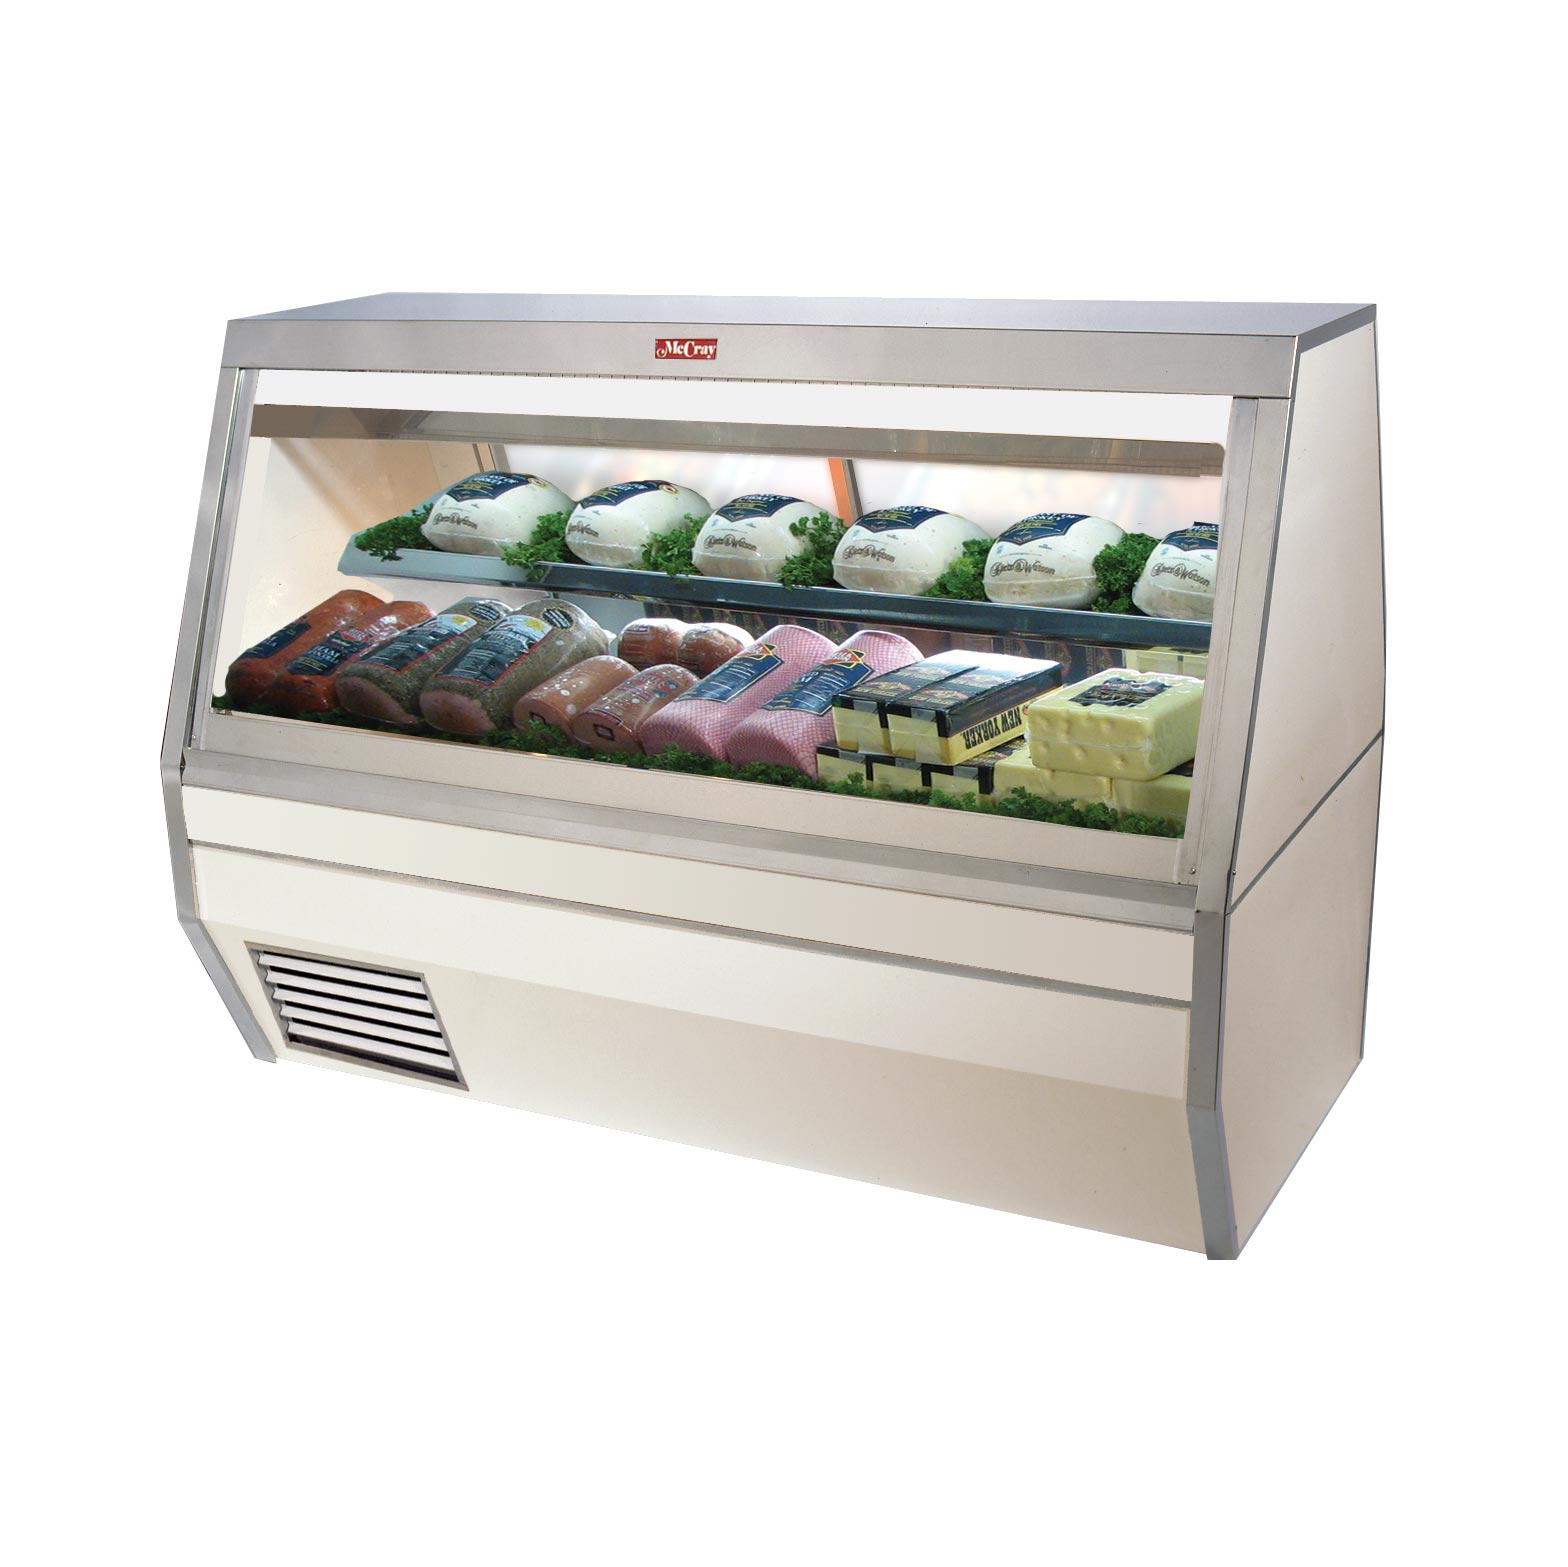 Howard-McCray R-CDS35-8-LED display case, refrigerated deli